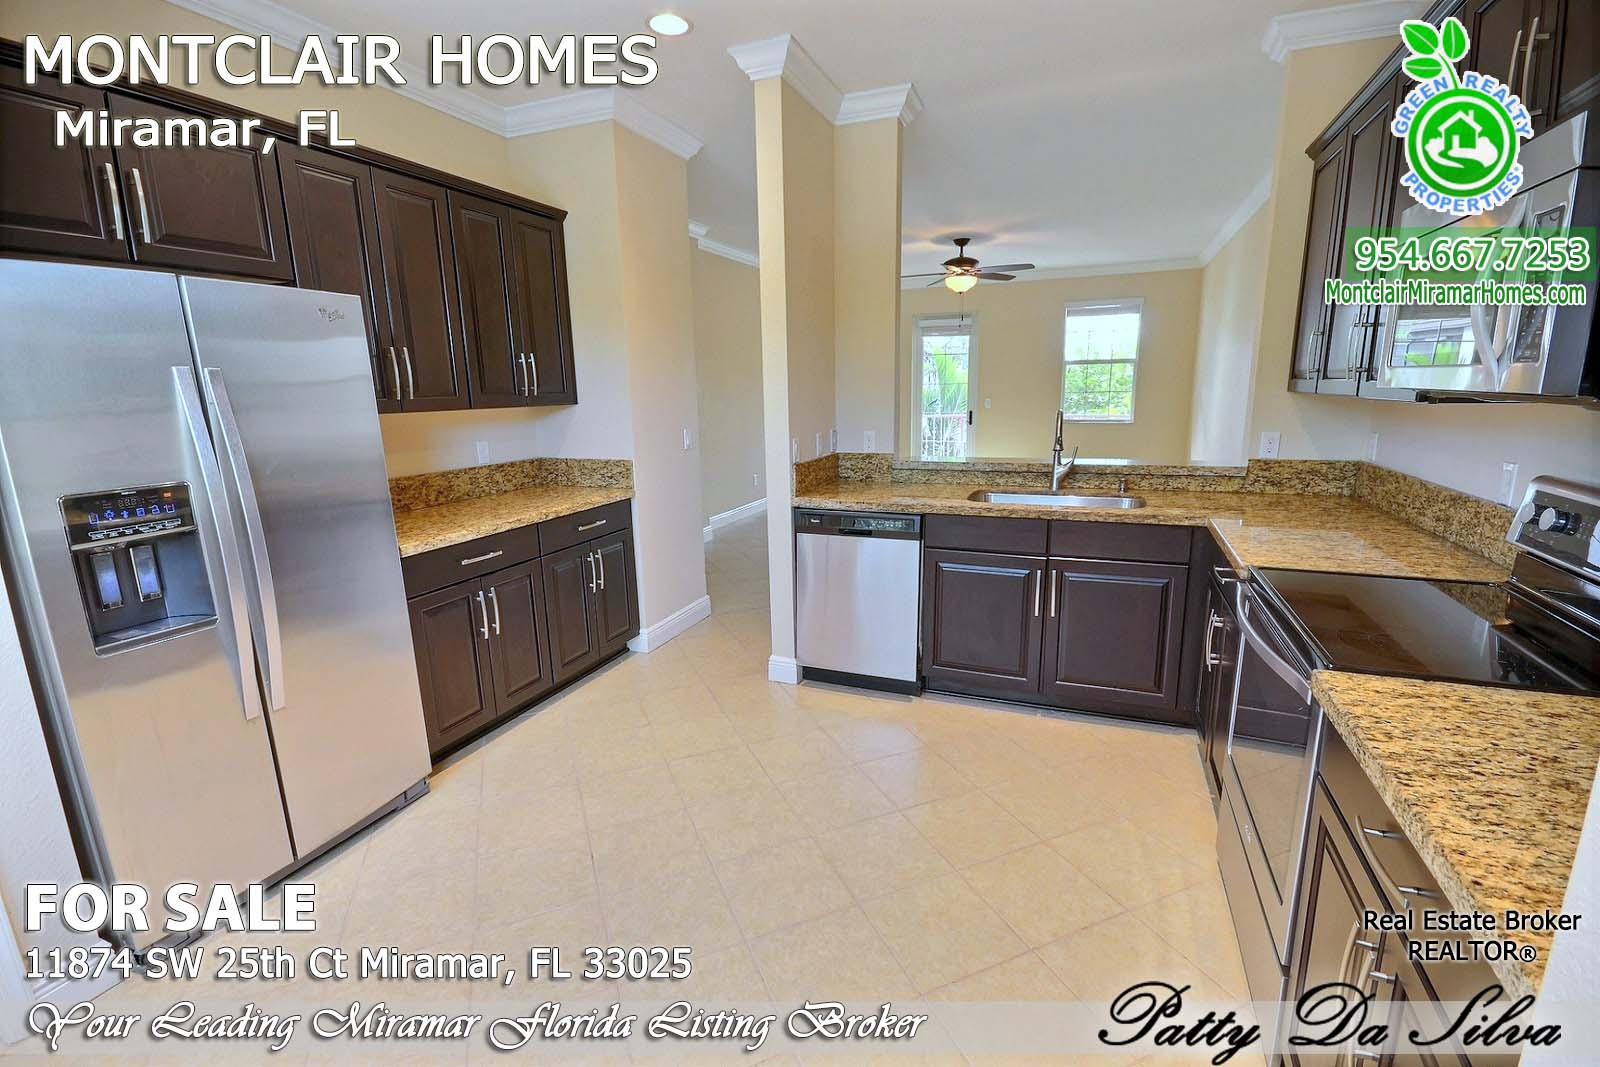 11874 SW 25 CT, Miramar FL 33025 - Montclair (3) - Copy